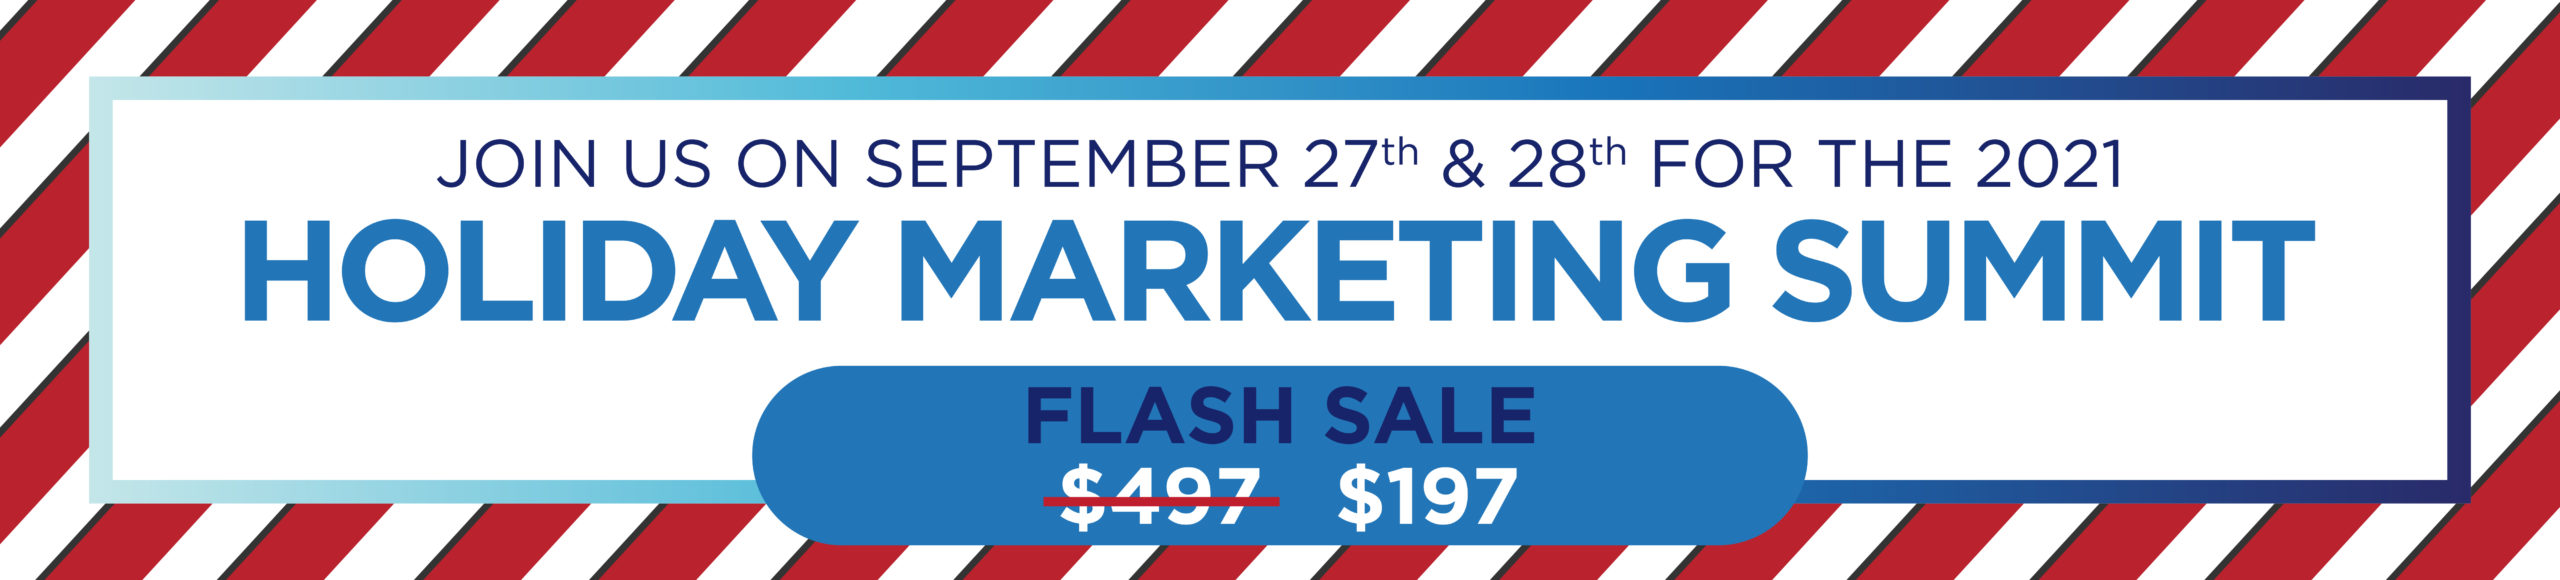 Holiday Marketing Summit Banner Updated Sept 10 Sale-01